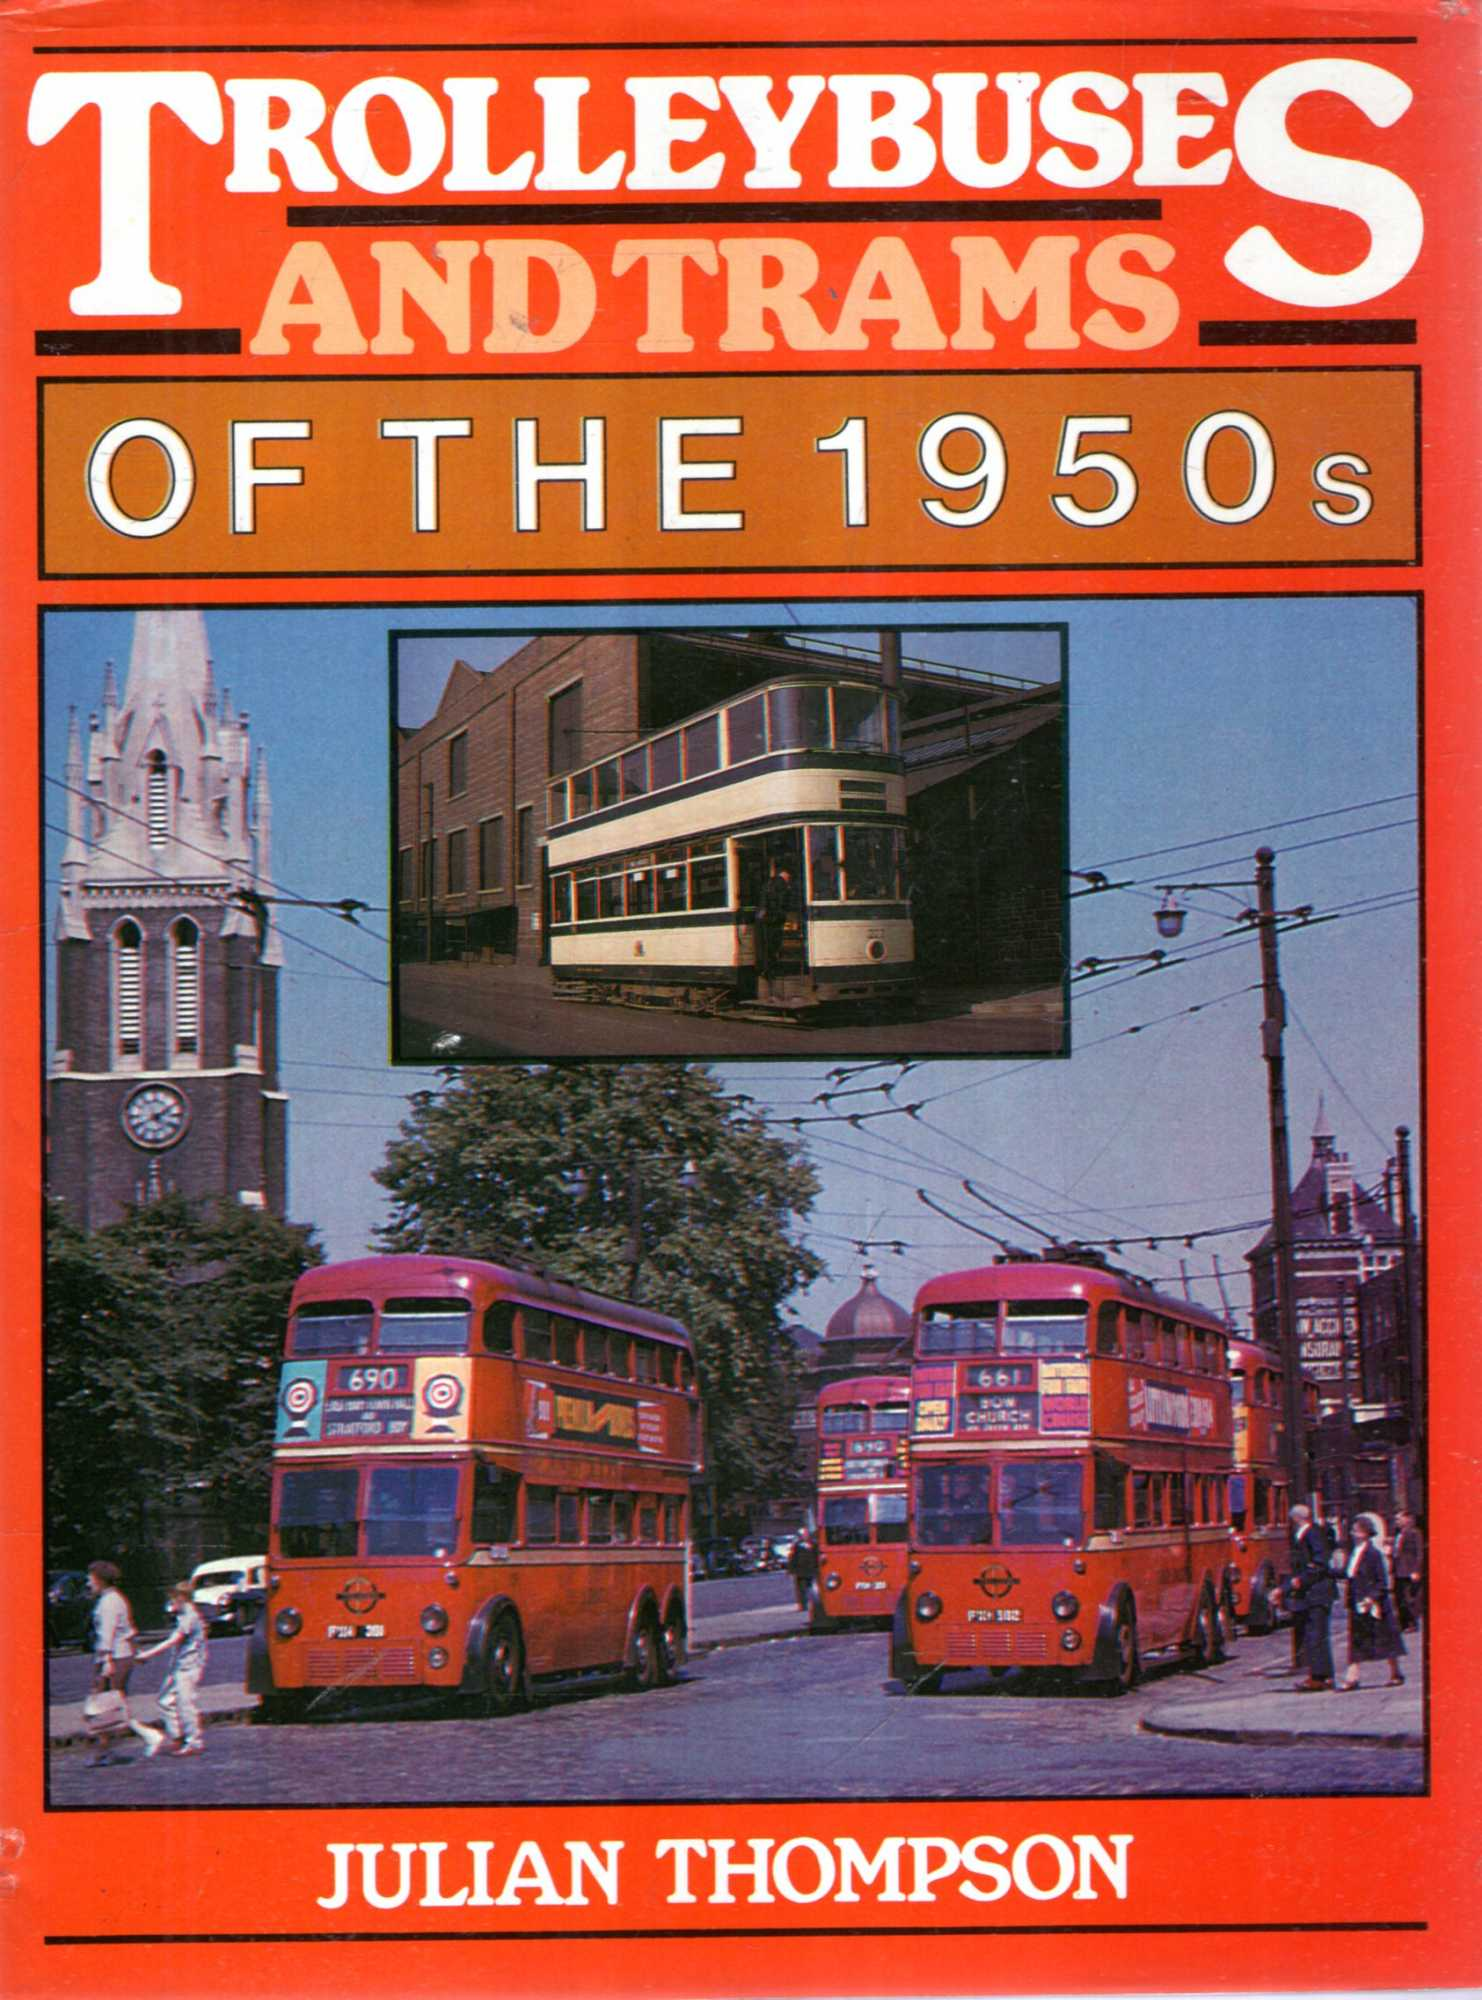 Image for Trolleybuses and Trams of the 1950s